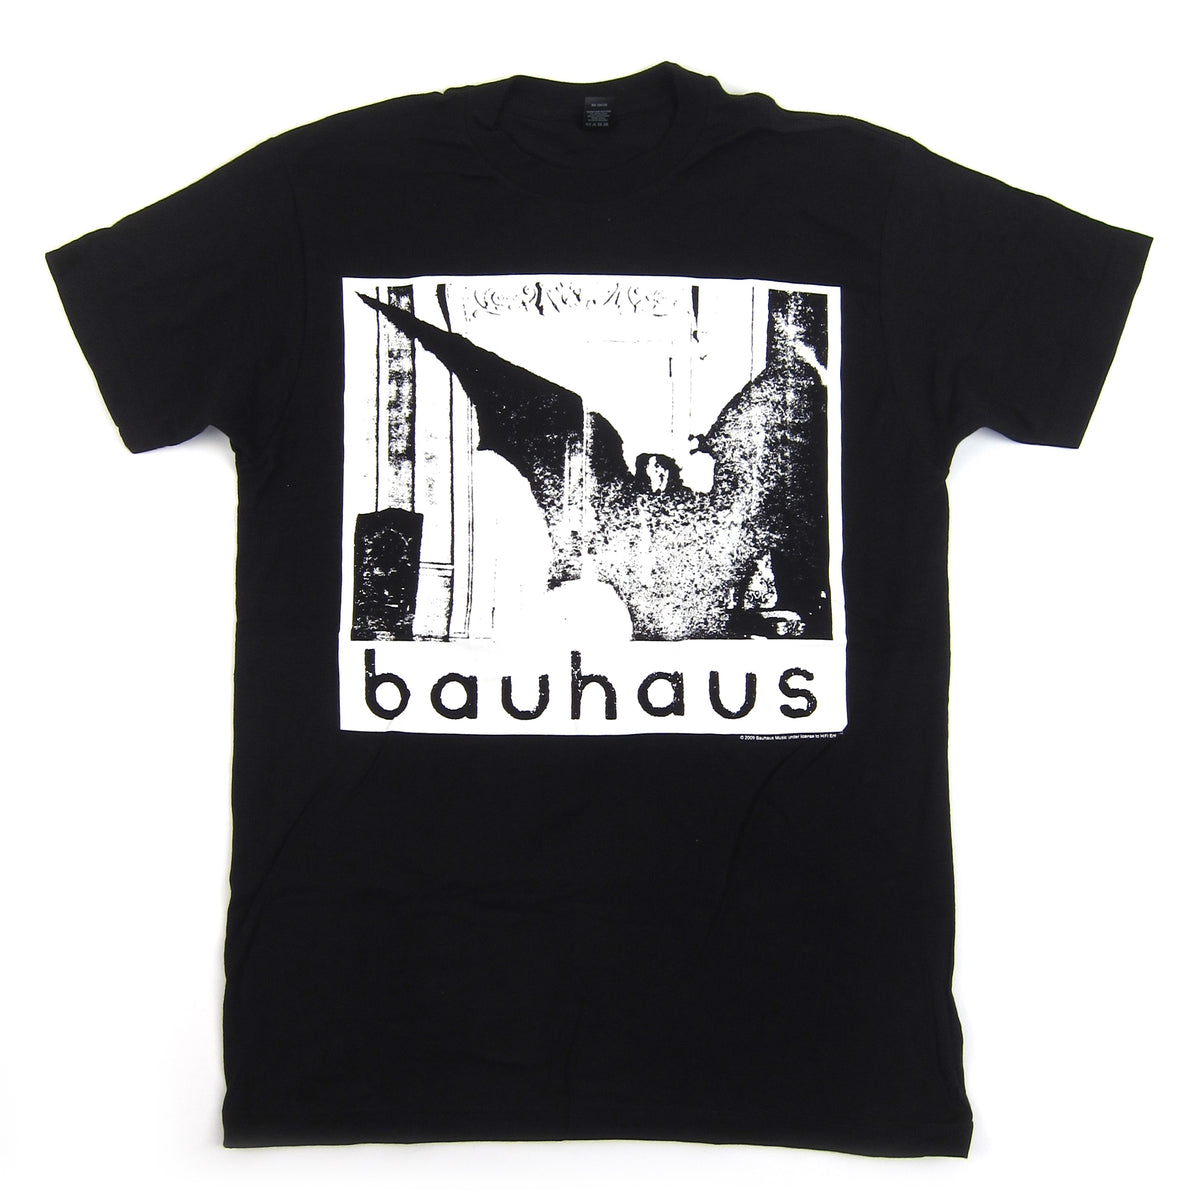 Bauhaus: Undead Discharge Shirt - Black